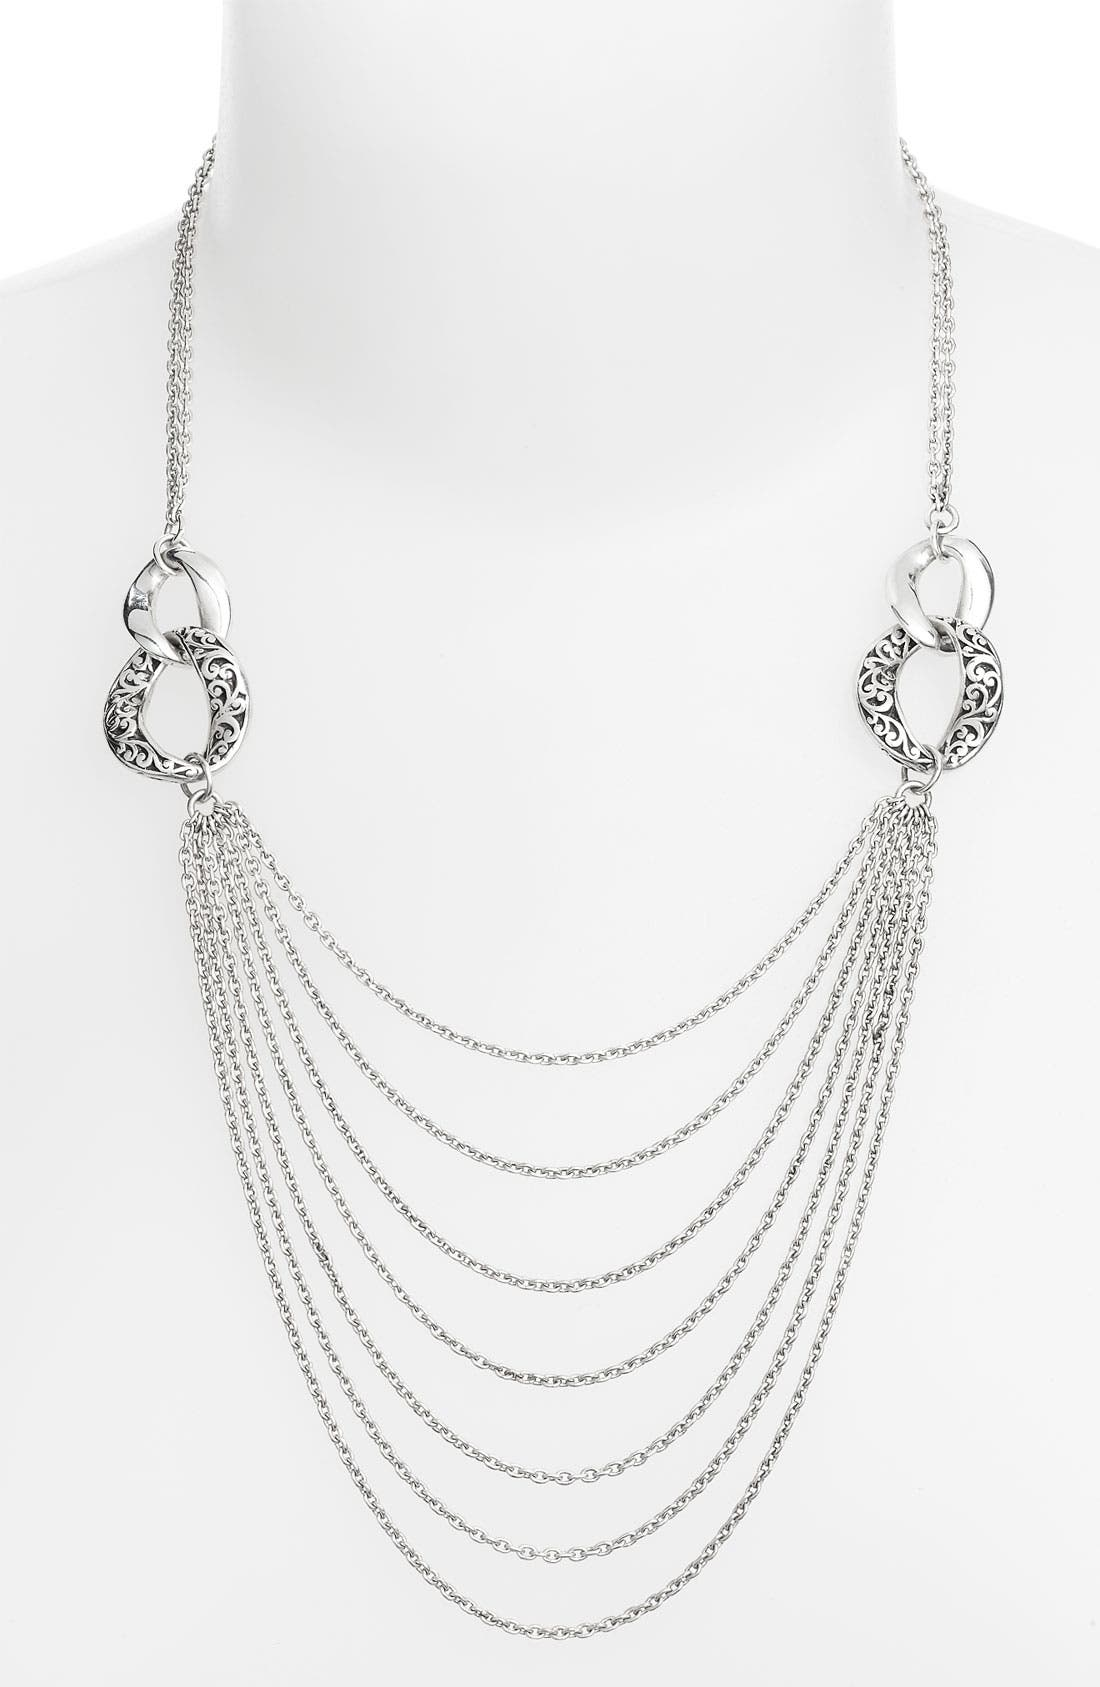 Main Image - Lois Hill 'Balls & Chains' Multi Chain Necklace